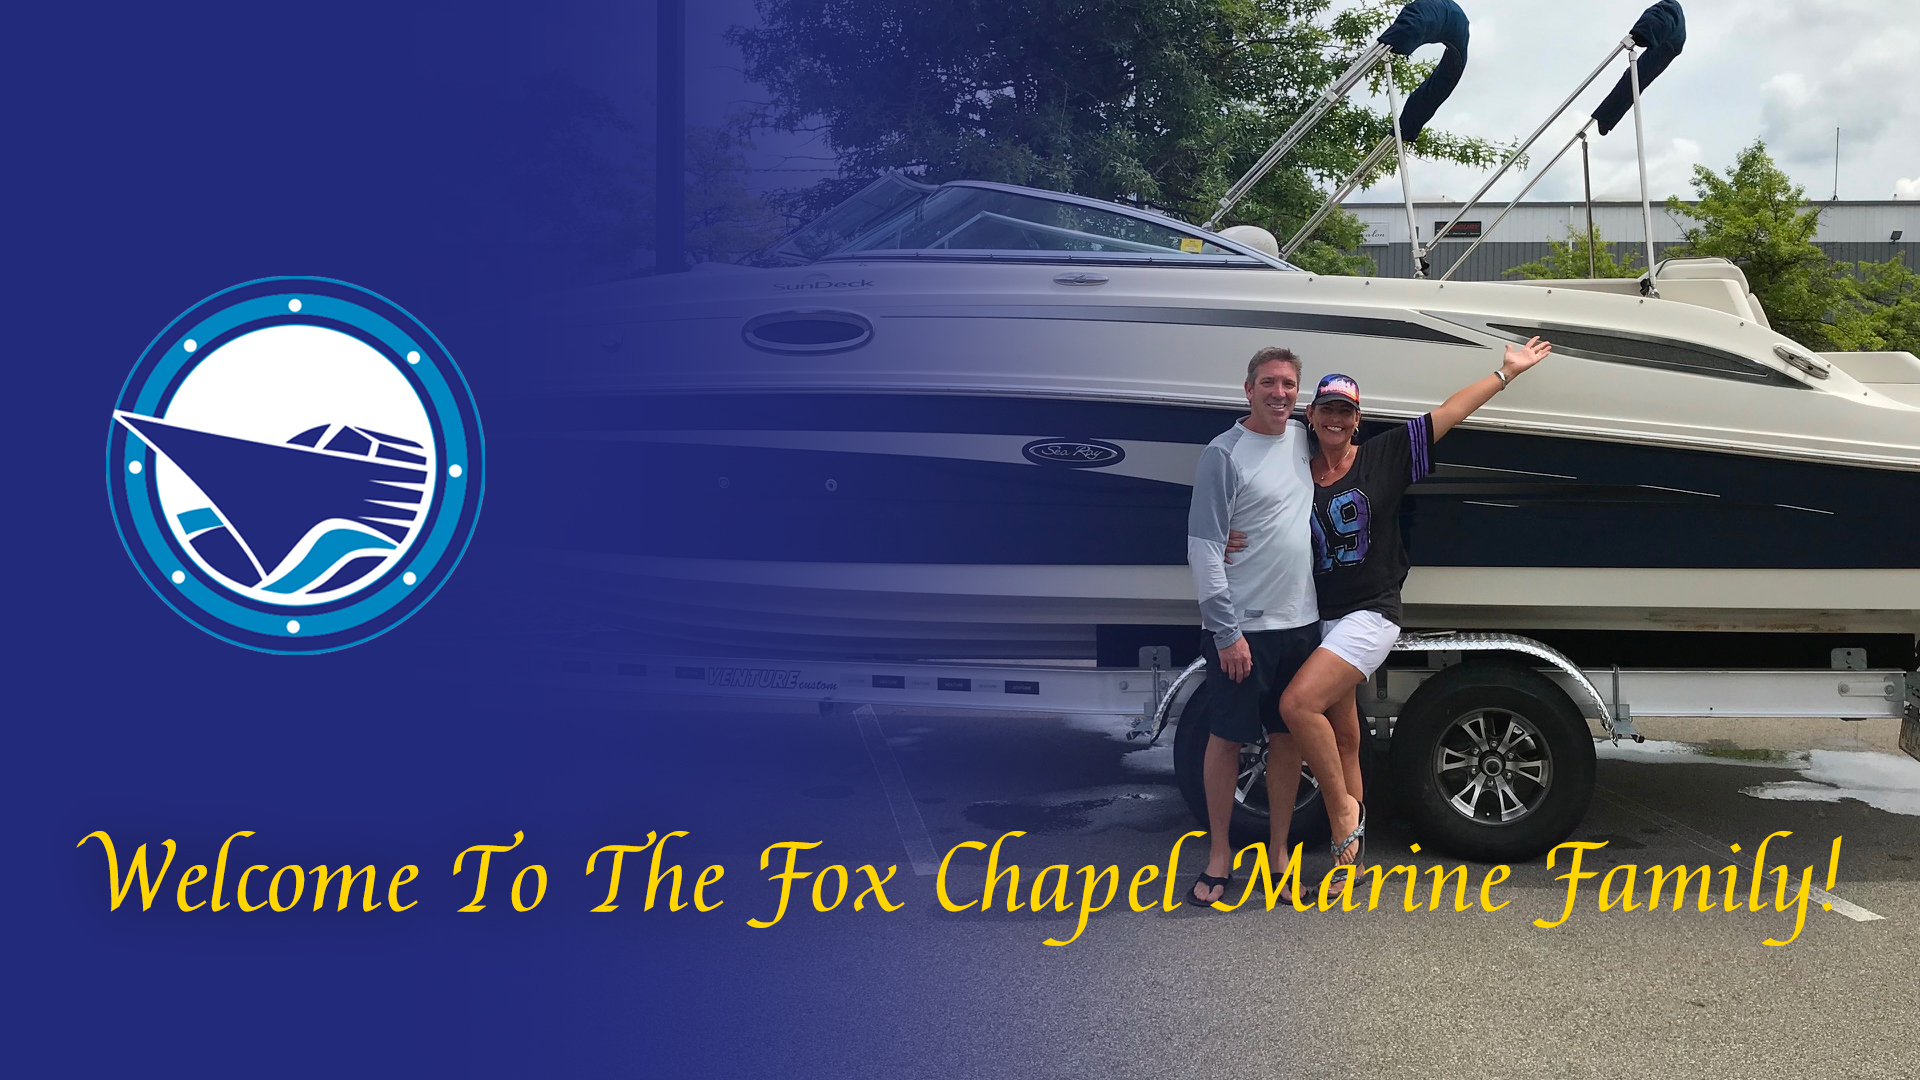 Welcome To The Fox Chapel Marine Family Brian & Monica!